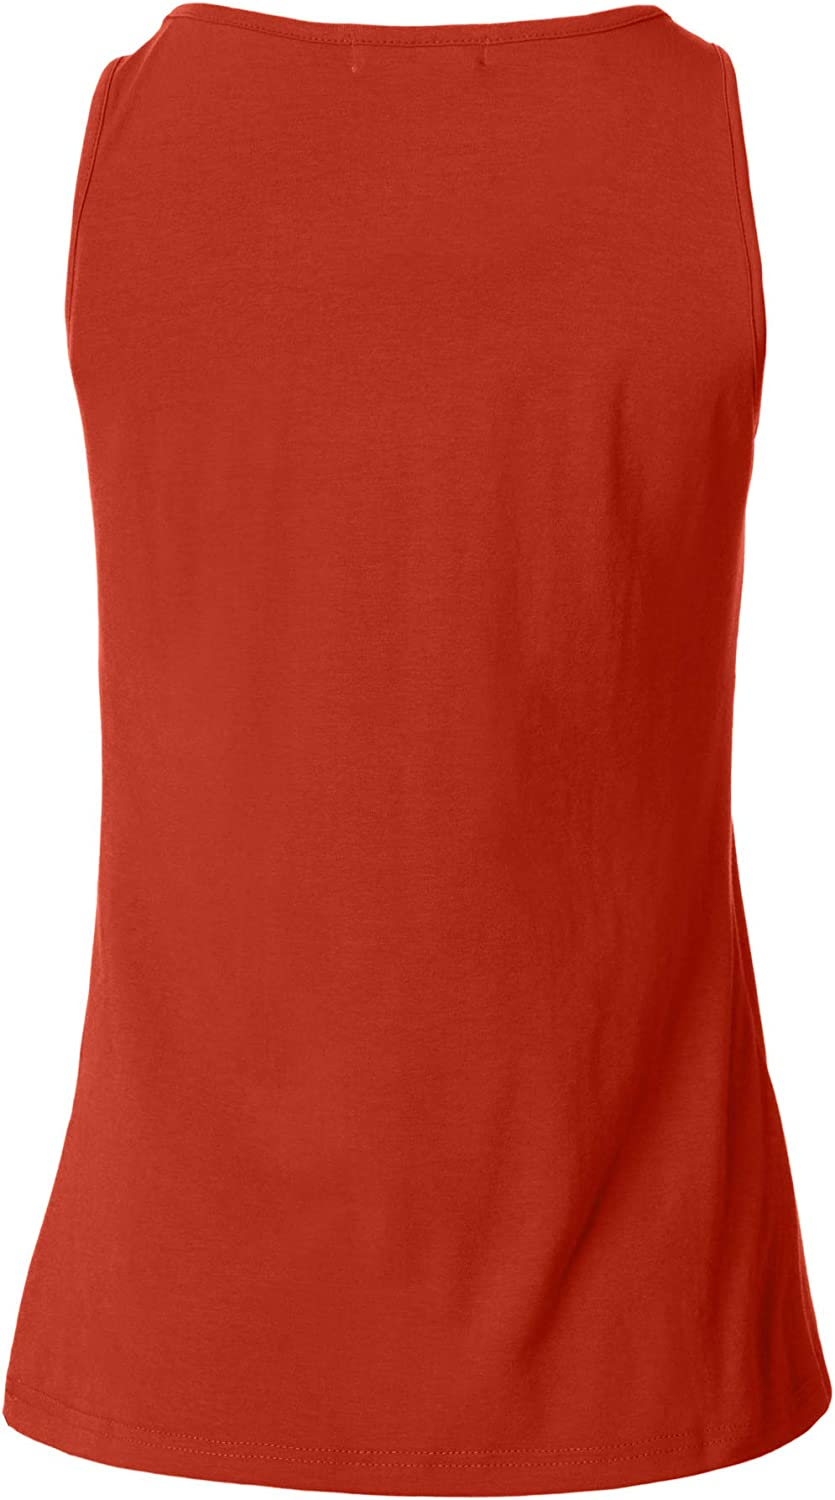 dressforfun 901024 Women Basic Tank Top, Round Neck, Cotton - different colours and sizes - (Red | XL | No. 304503) Dark Red | Xxl | No. 304509